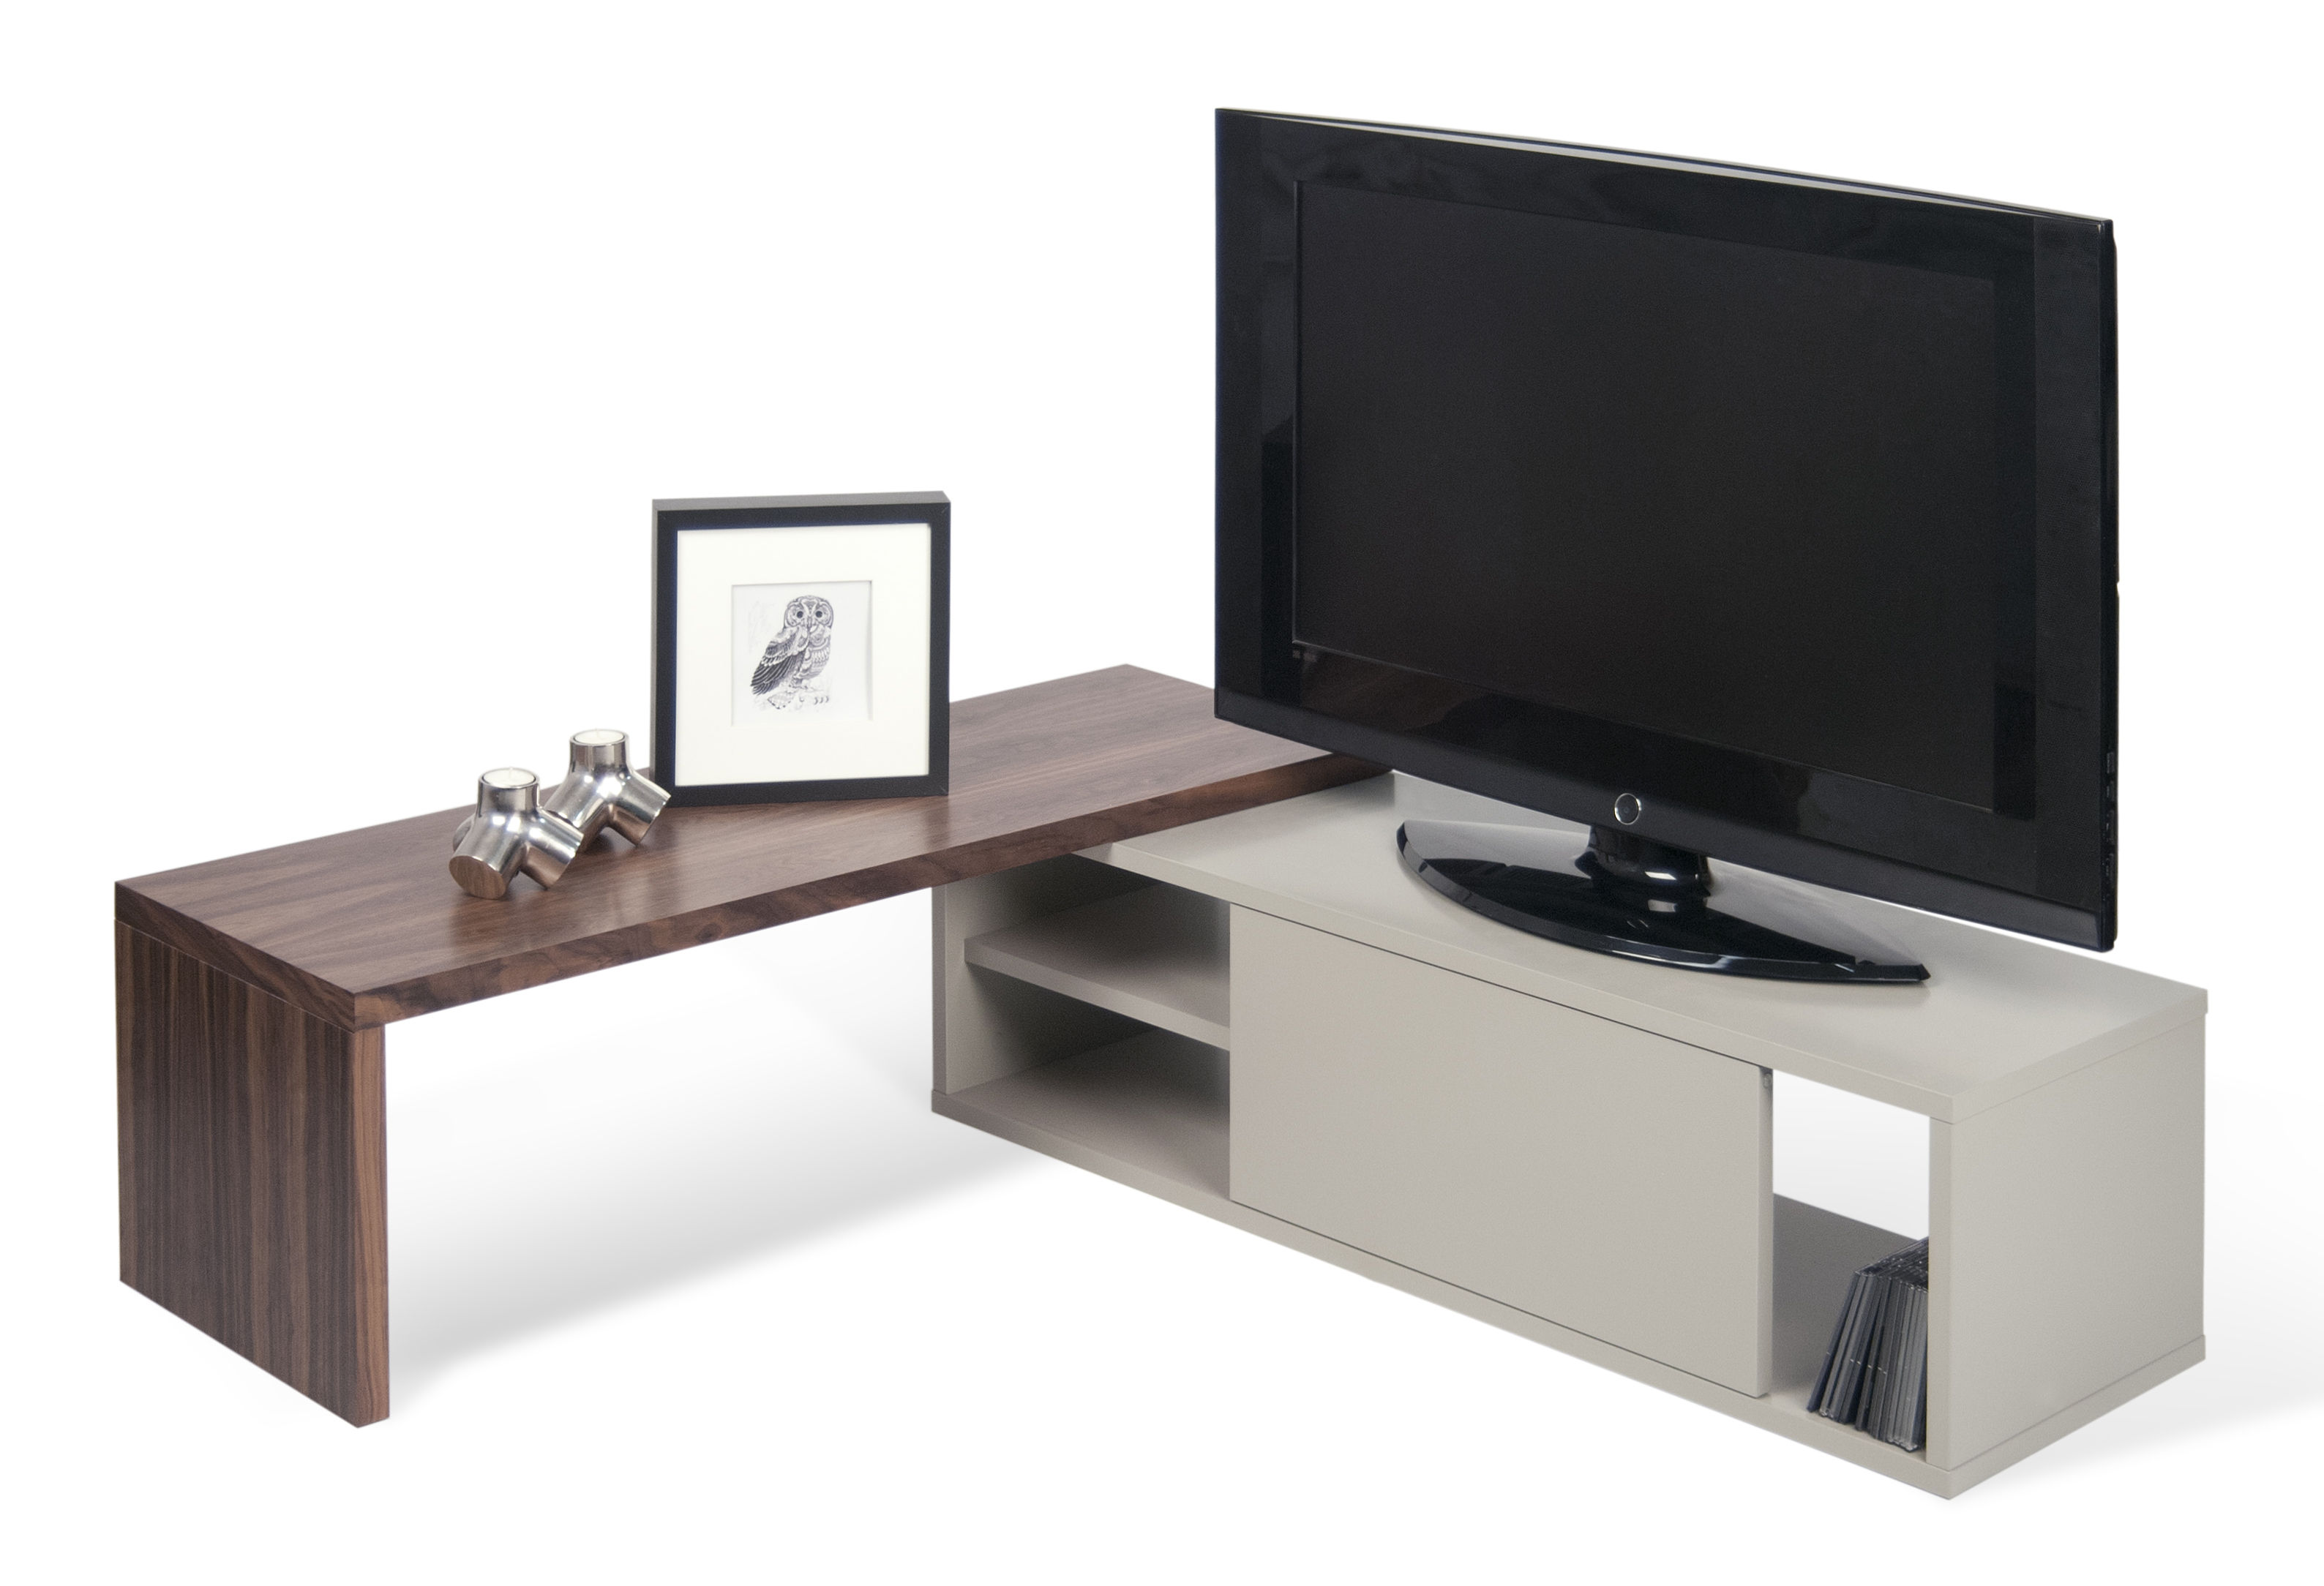 slide erweiterbares tv m bel drehbar l 110 bis 203 cm grau nussbaum by pop up home. Black Bedroom Furniture Sets. Home Design Ideas